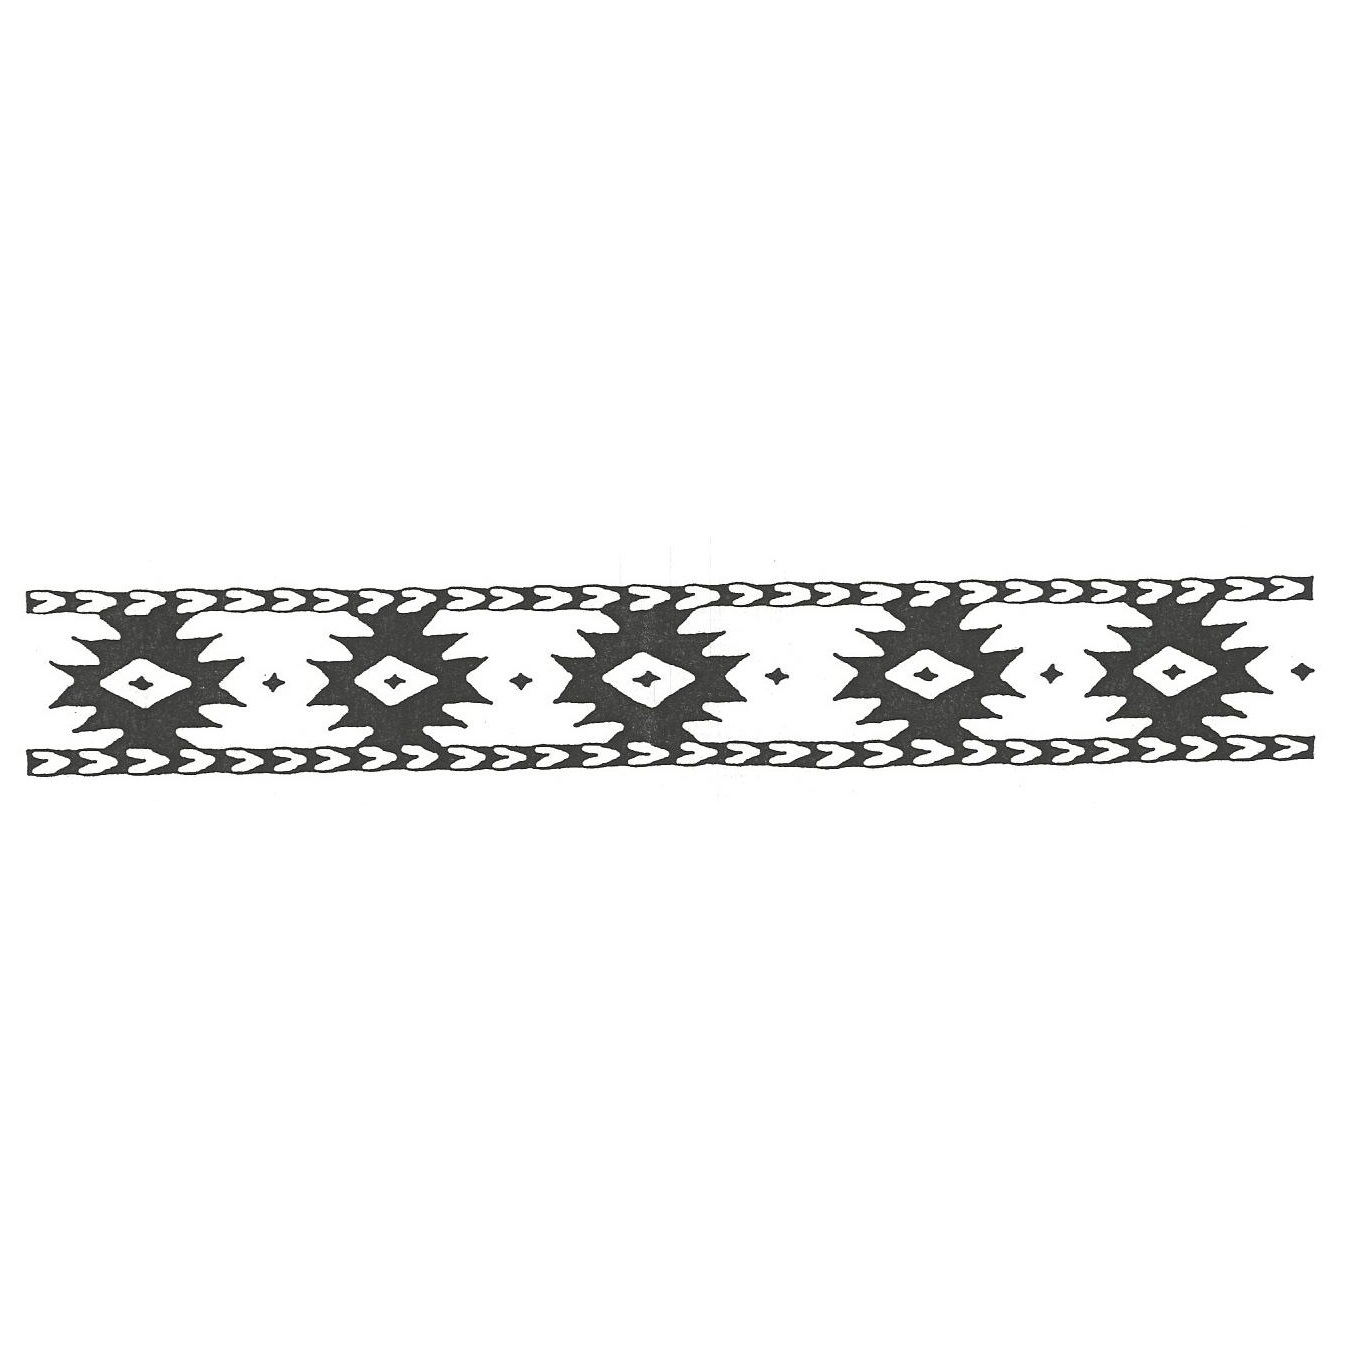 Southwestern borders and frames clipart black and white clip freeuse library Southwest Border clip freeuse library